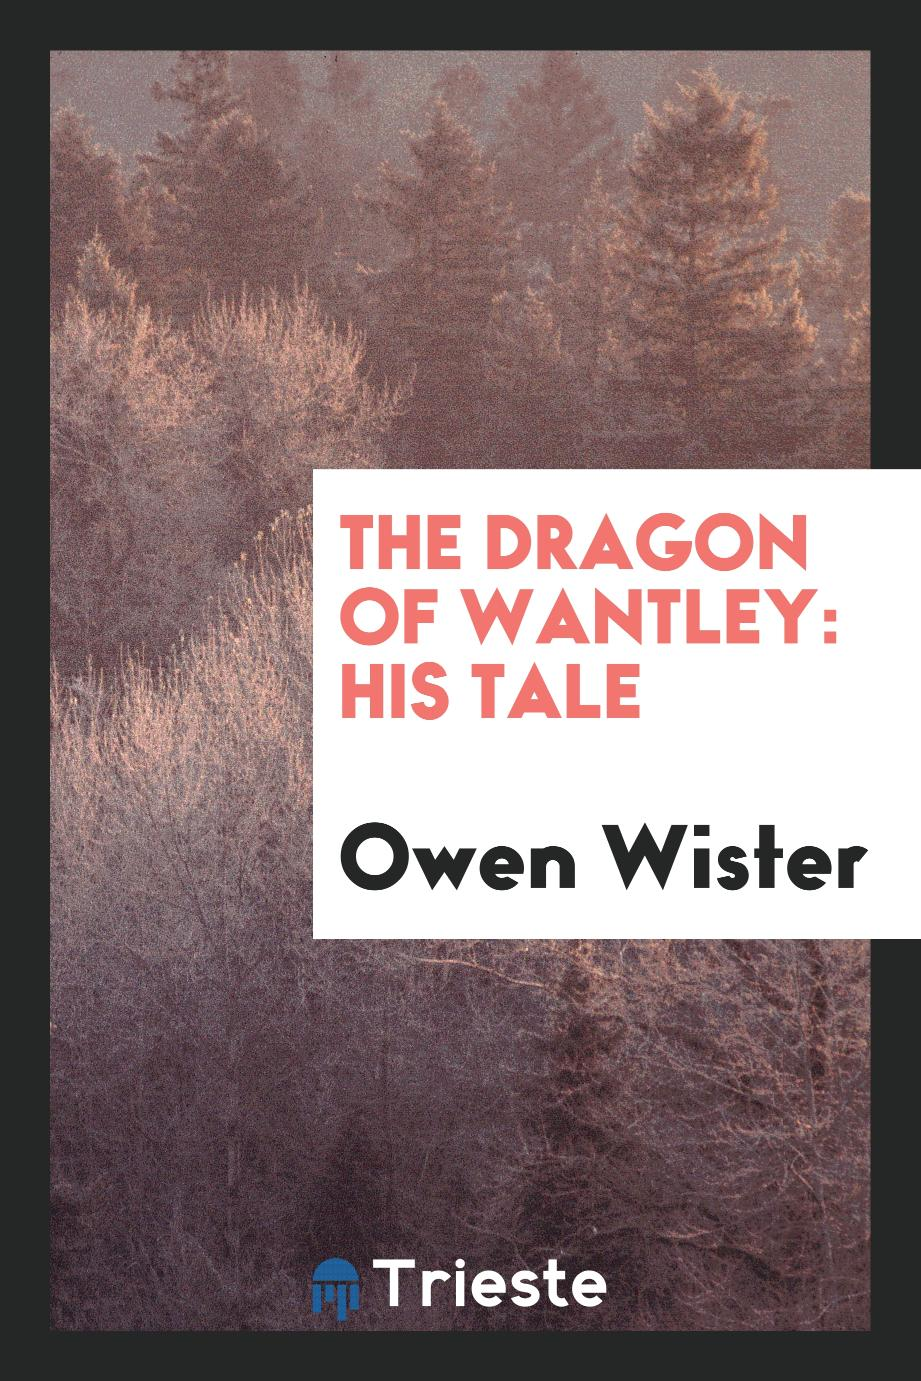 The Dragon of Wantley: His Tale